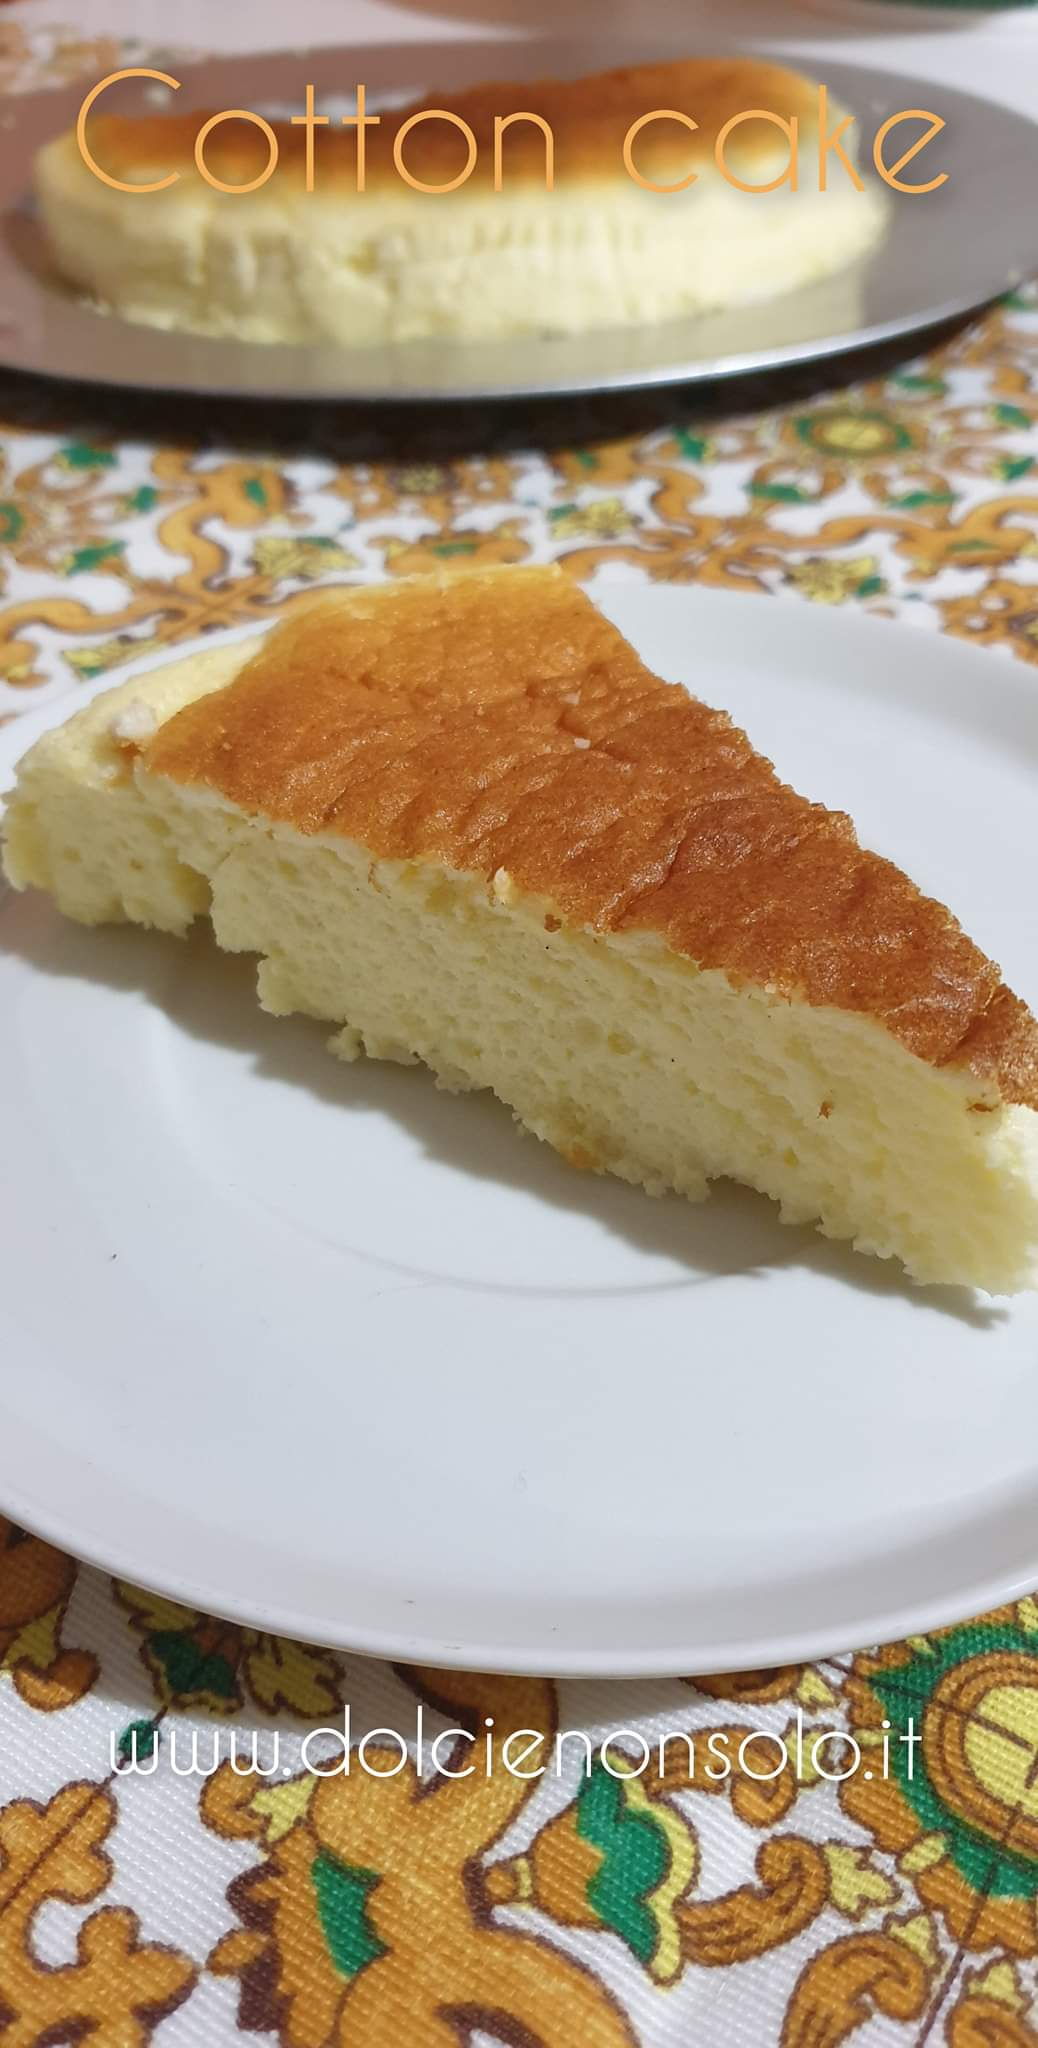 Cotton cake o cheesecake giapponese